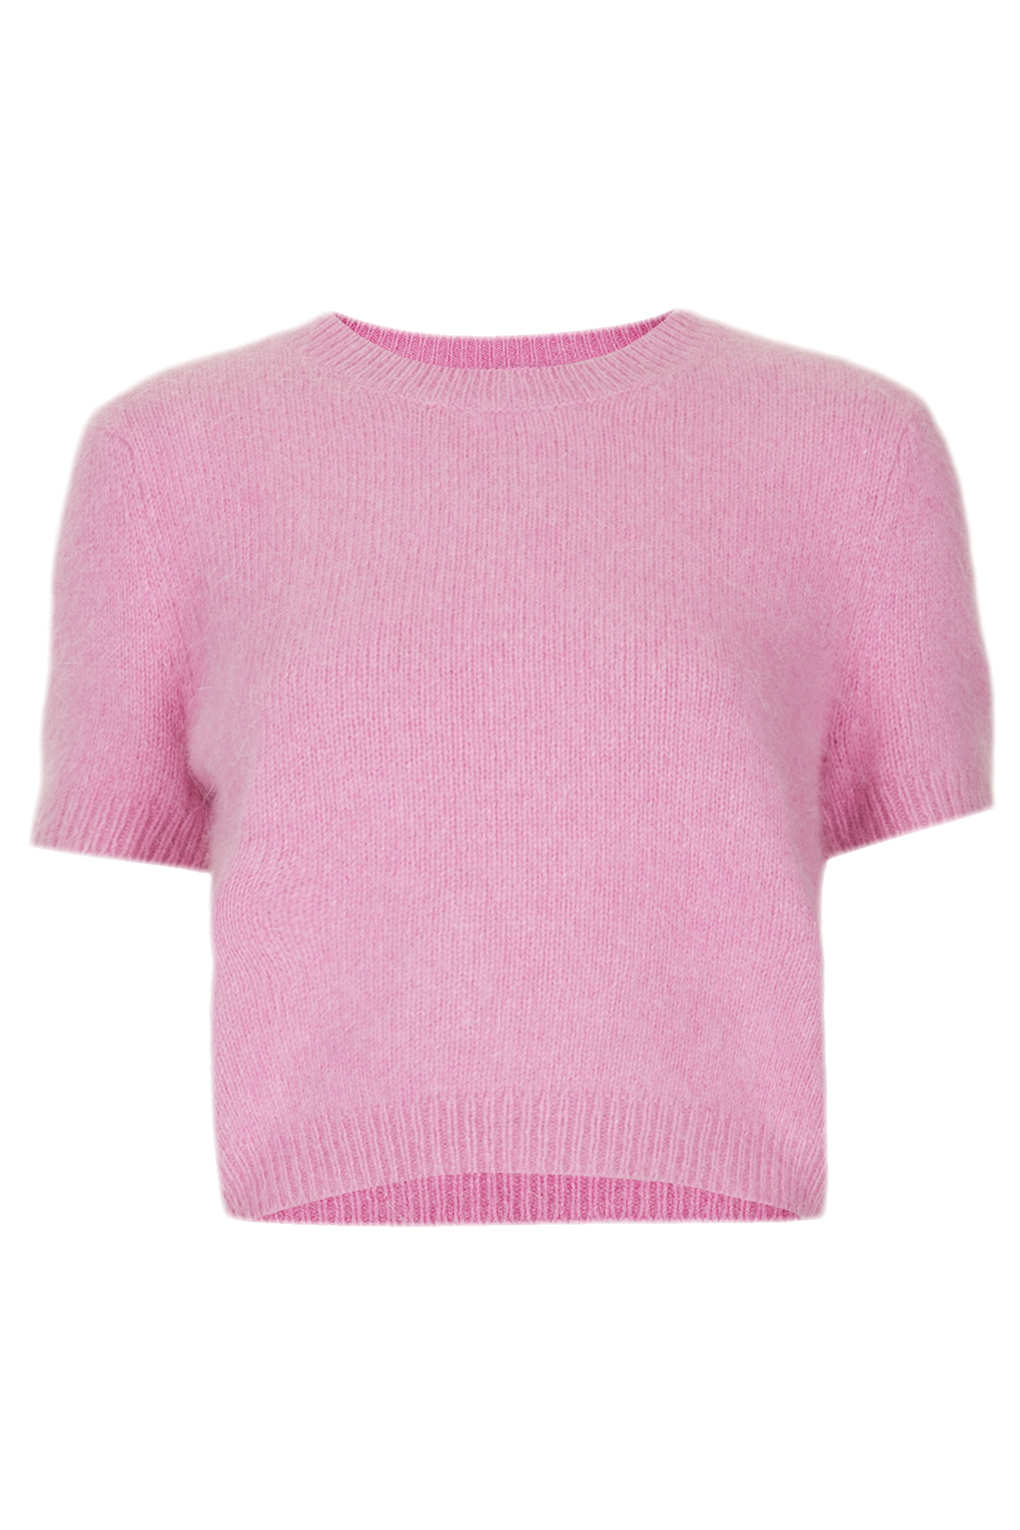 Knit Sweaters Urban Dictionary : Women s fringed sweater jumpers sale